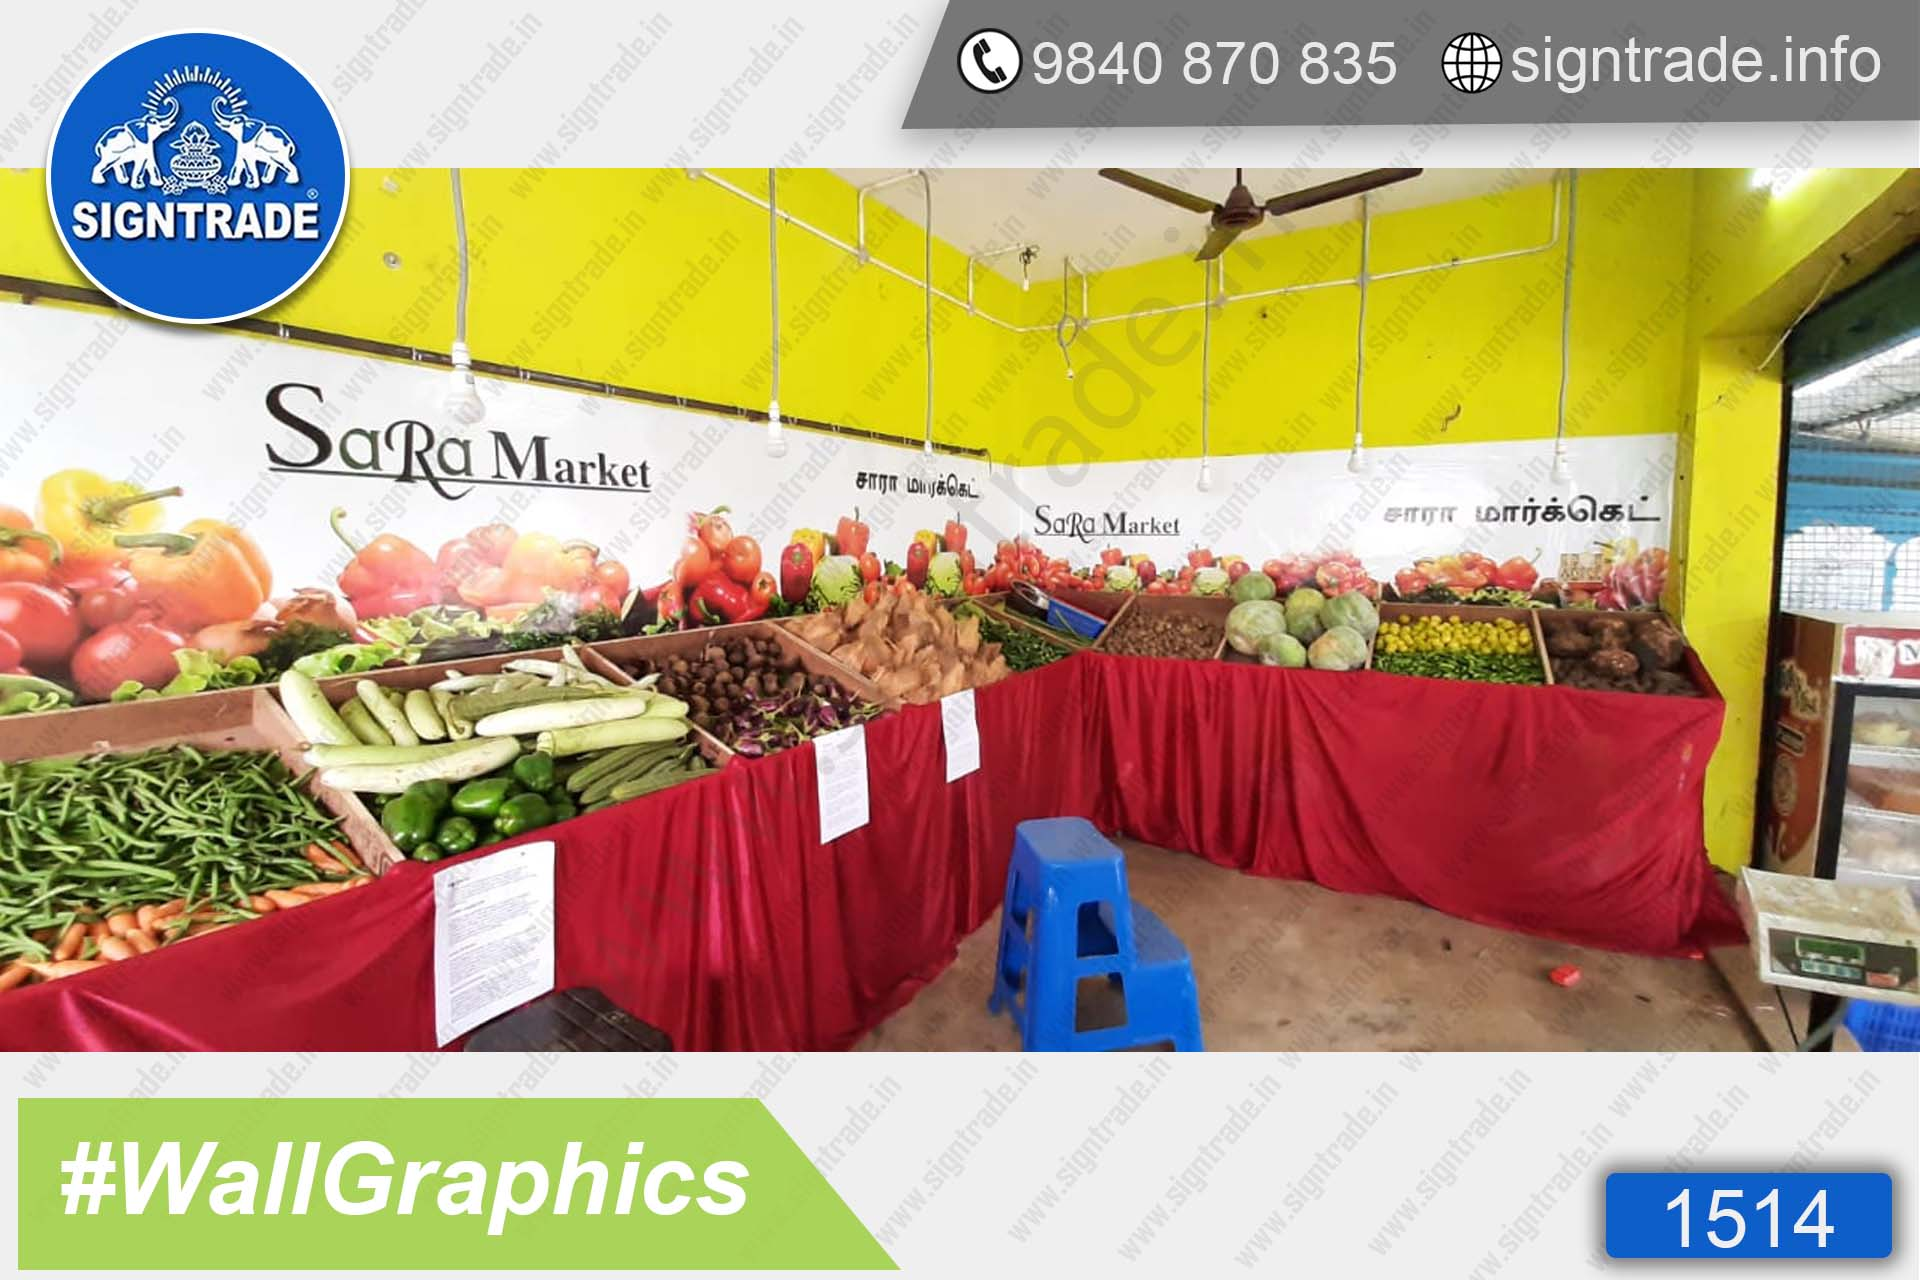 Sara Market, Madambakkam, Chennai - SIGNTRADE - Wall Graphics - Vinyl Graphics on Wall - Digital Printing Services in Chennai